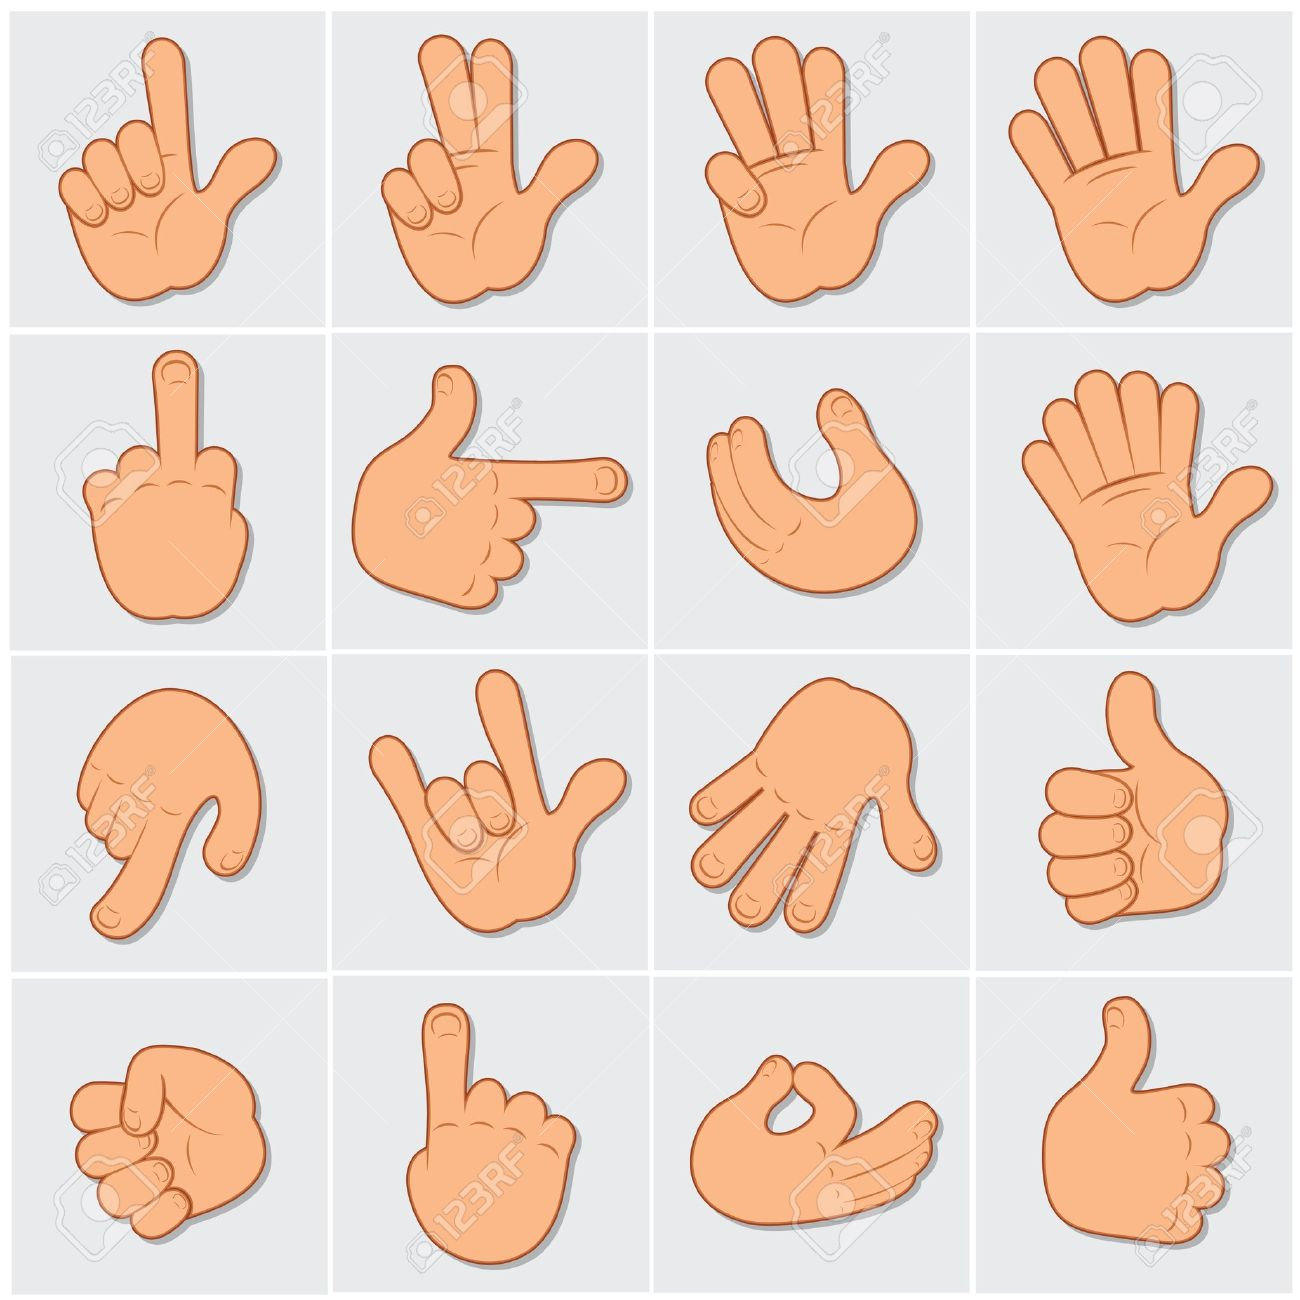 Hand Gesture clipart Hand gesture Collection Clipart clipart